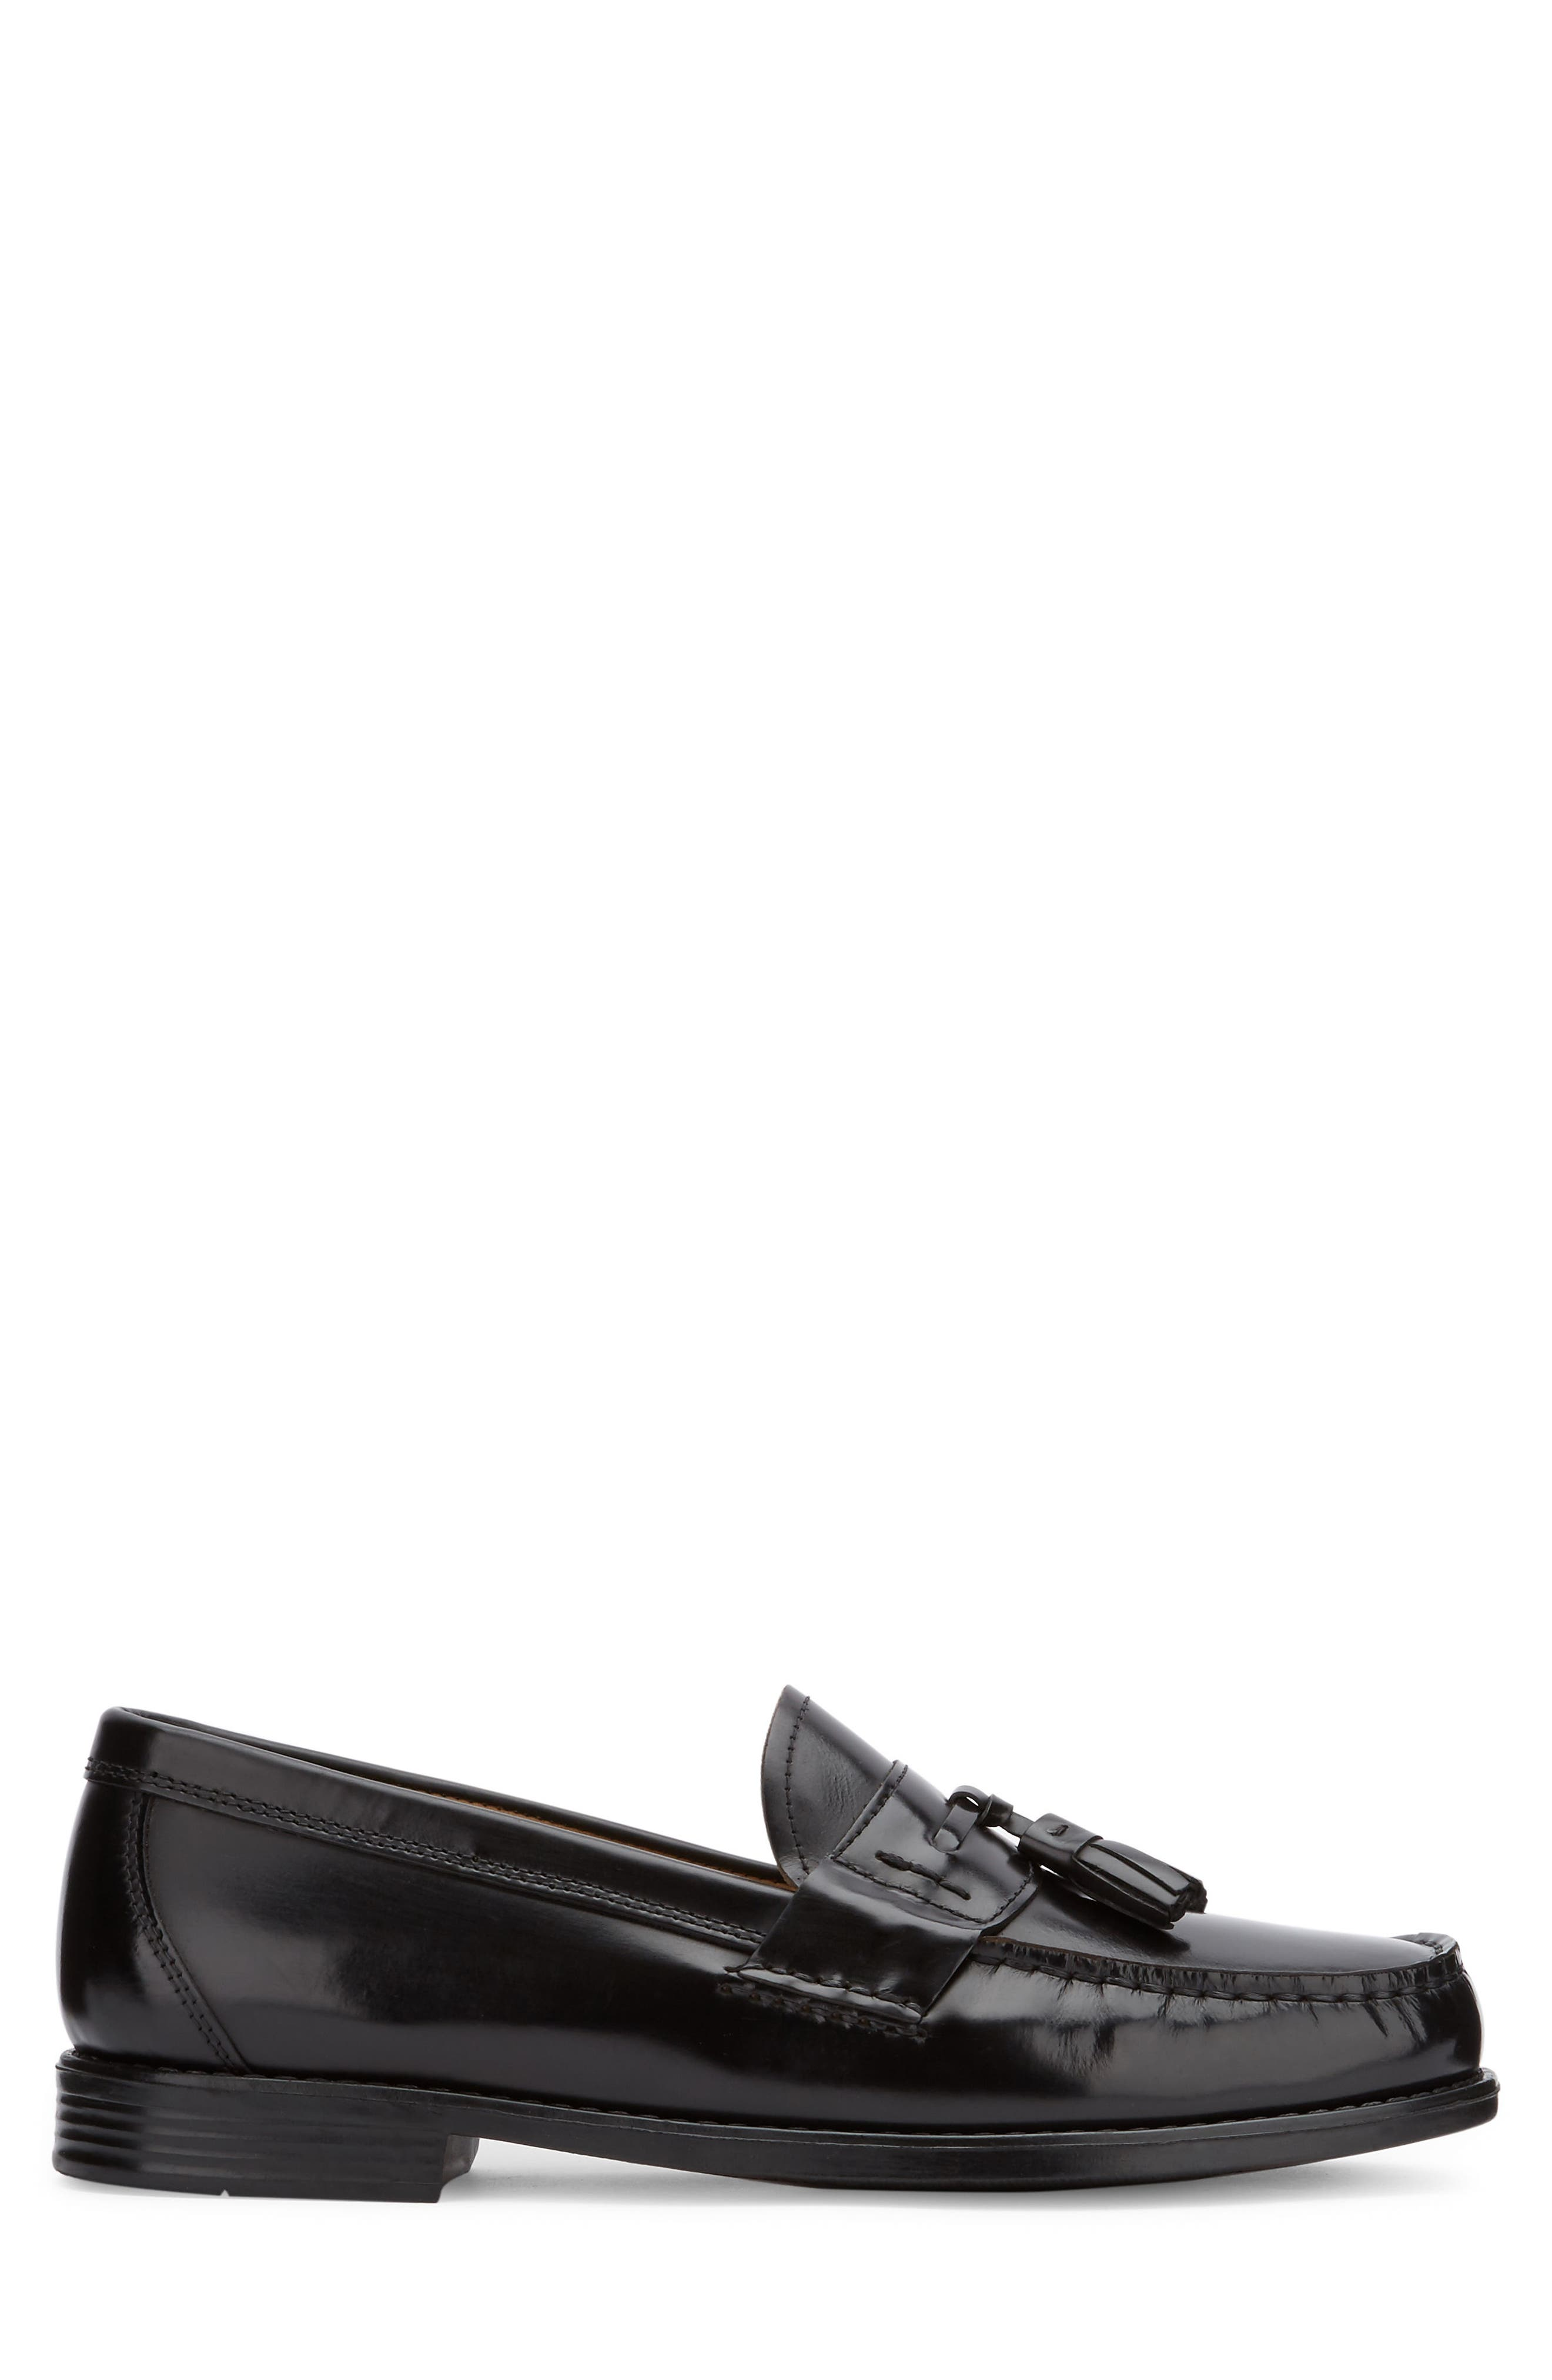 Alternate Image 3  - G.H. Bass & Co. Wallace Tassel Loafer (Men)